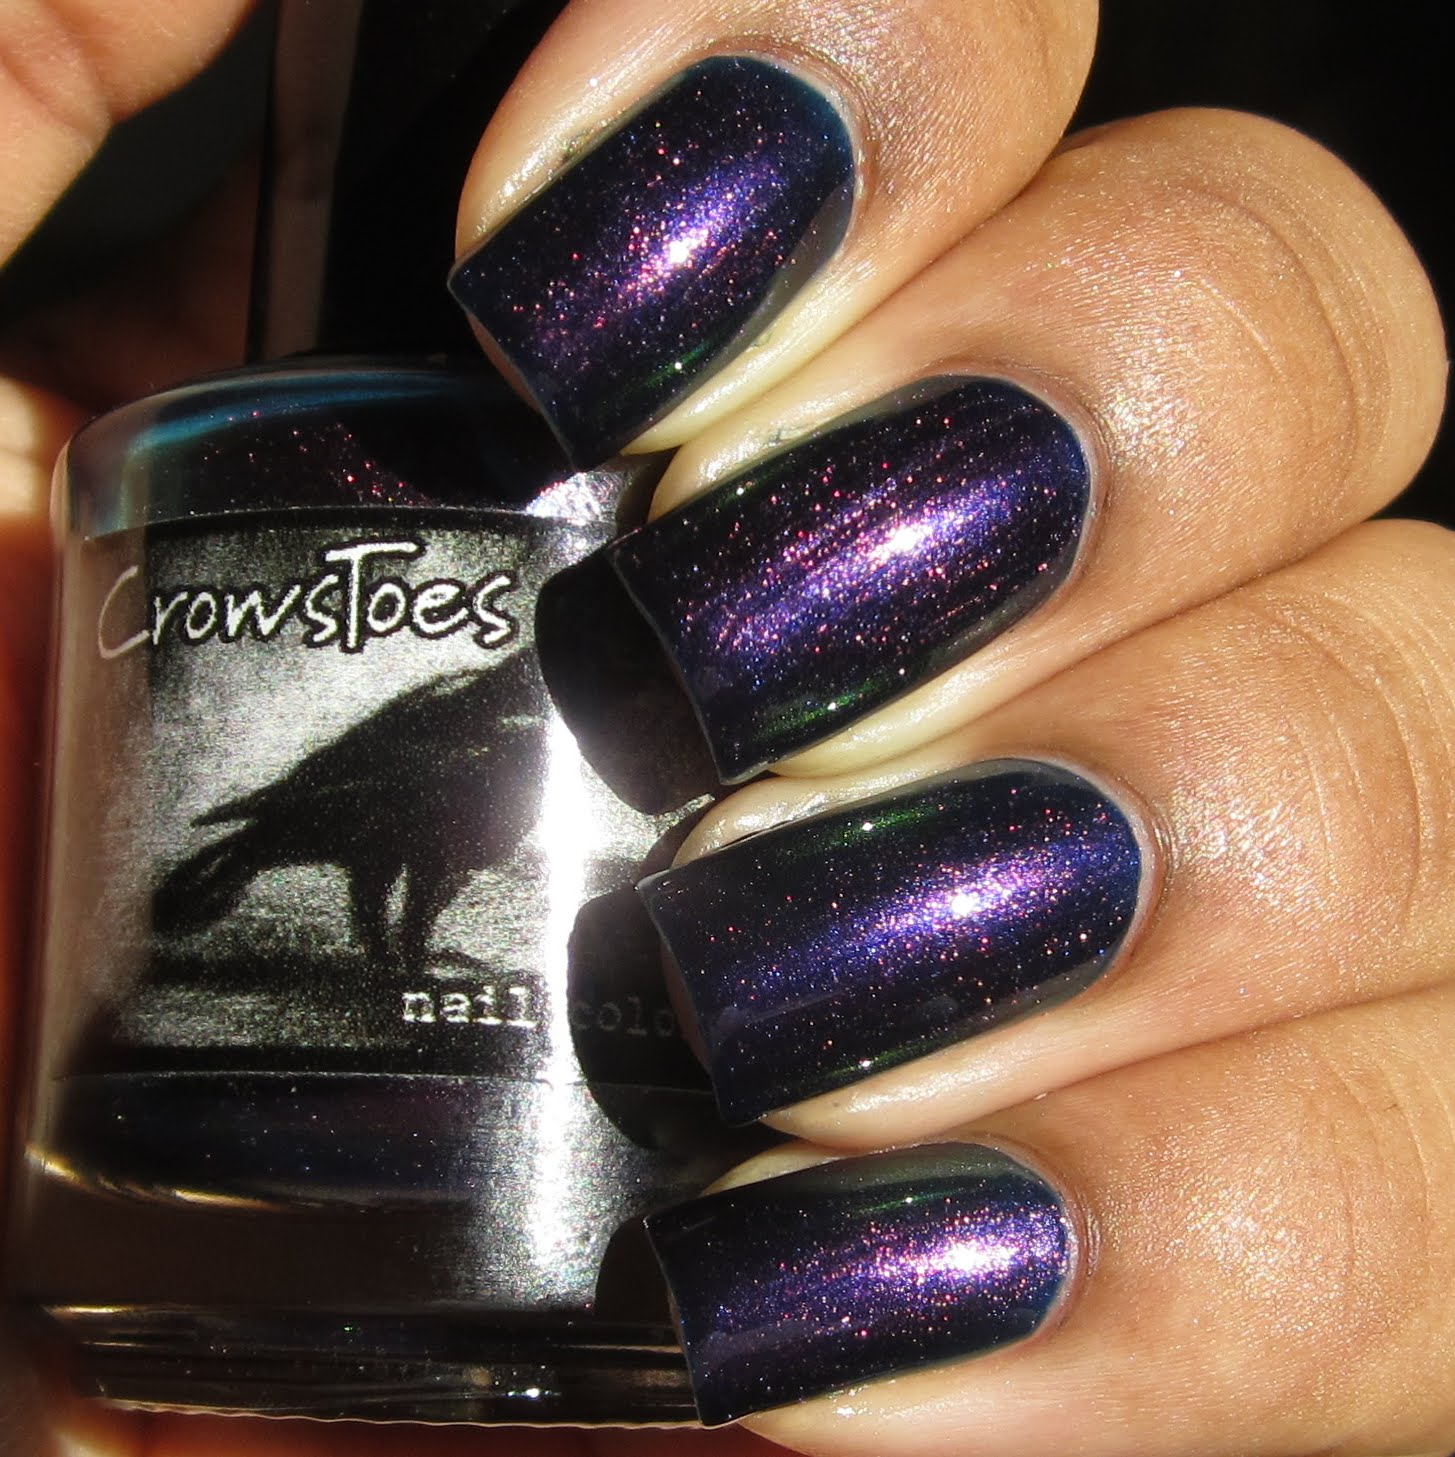 Crows Toes Huginn & Muninn duochrome nail polish swatch